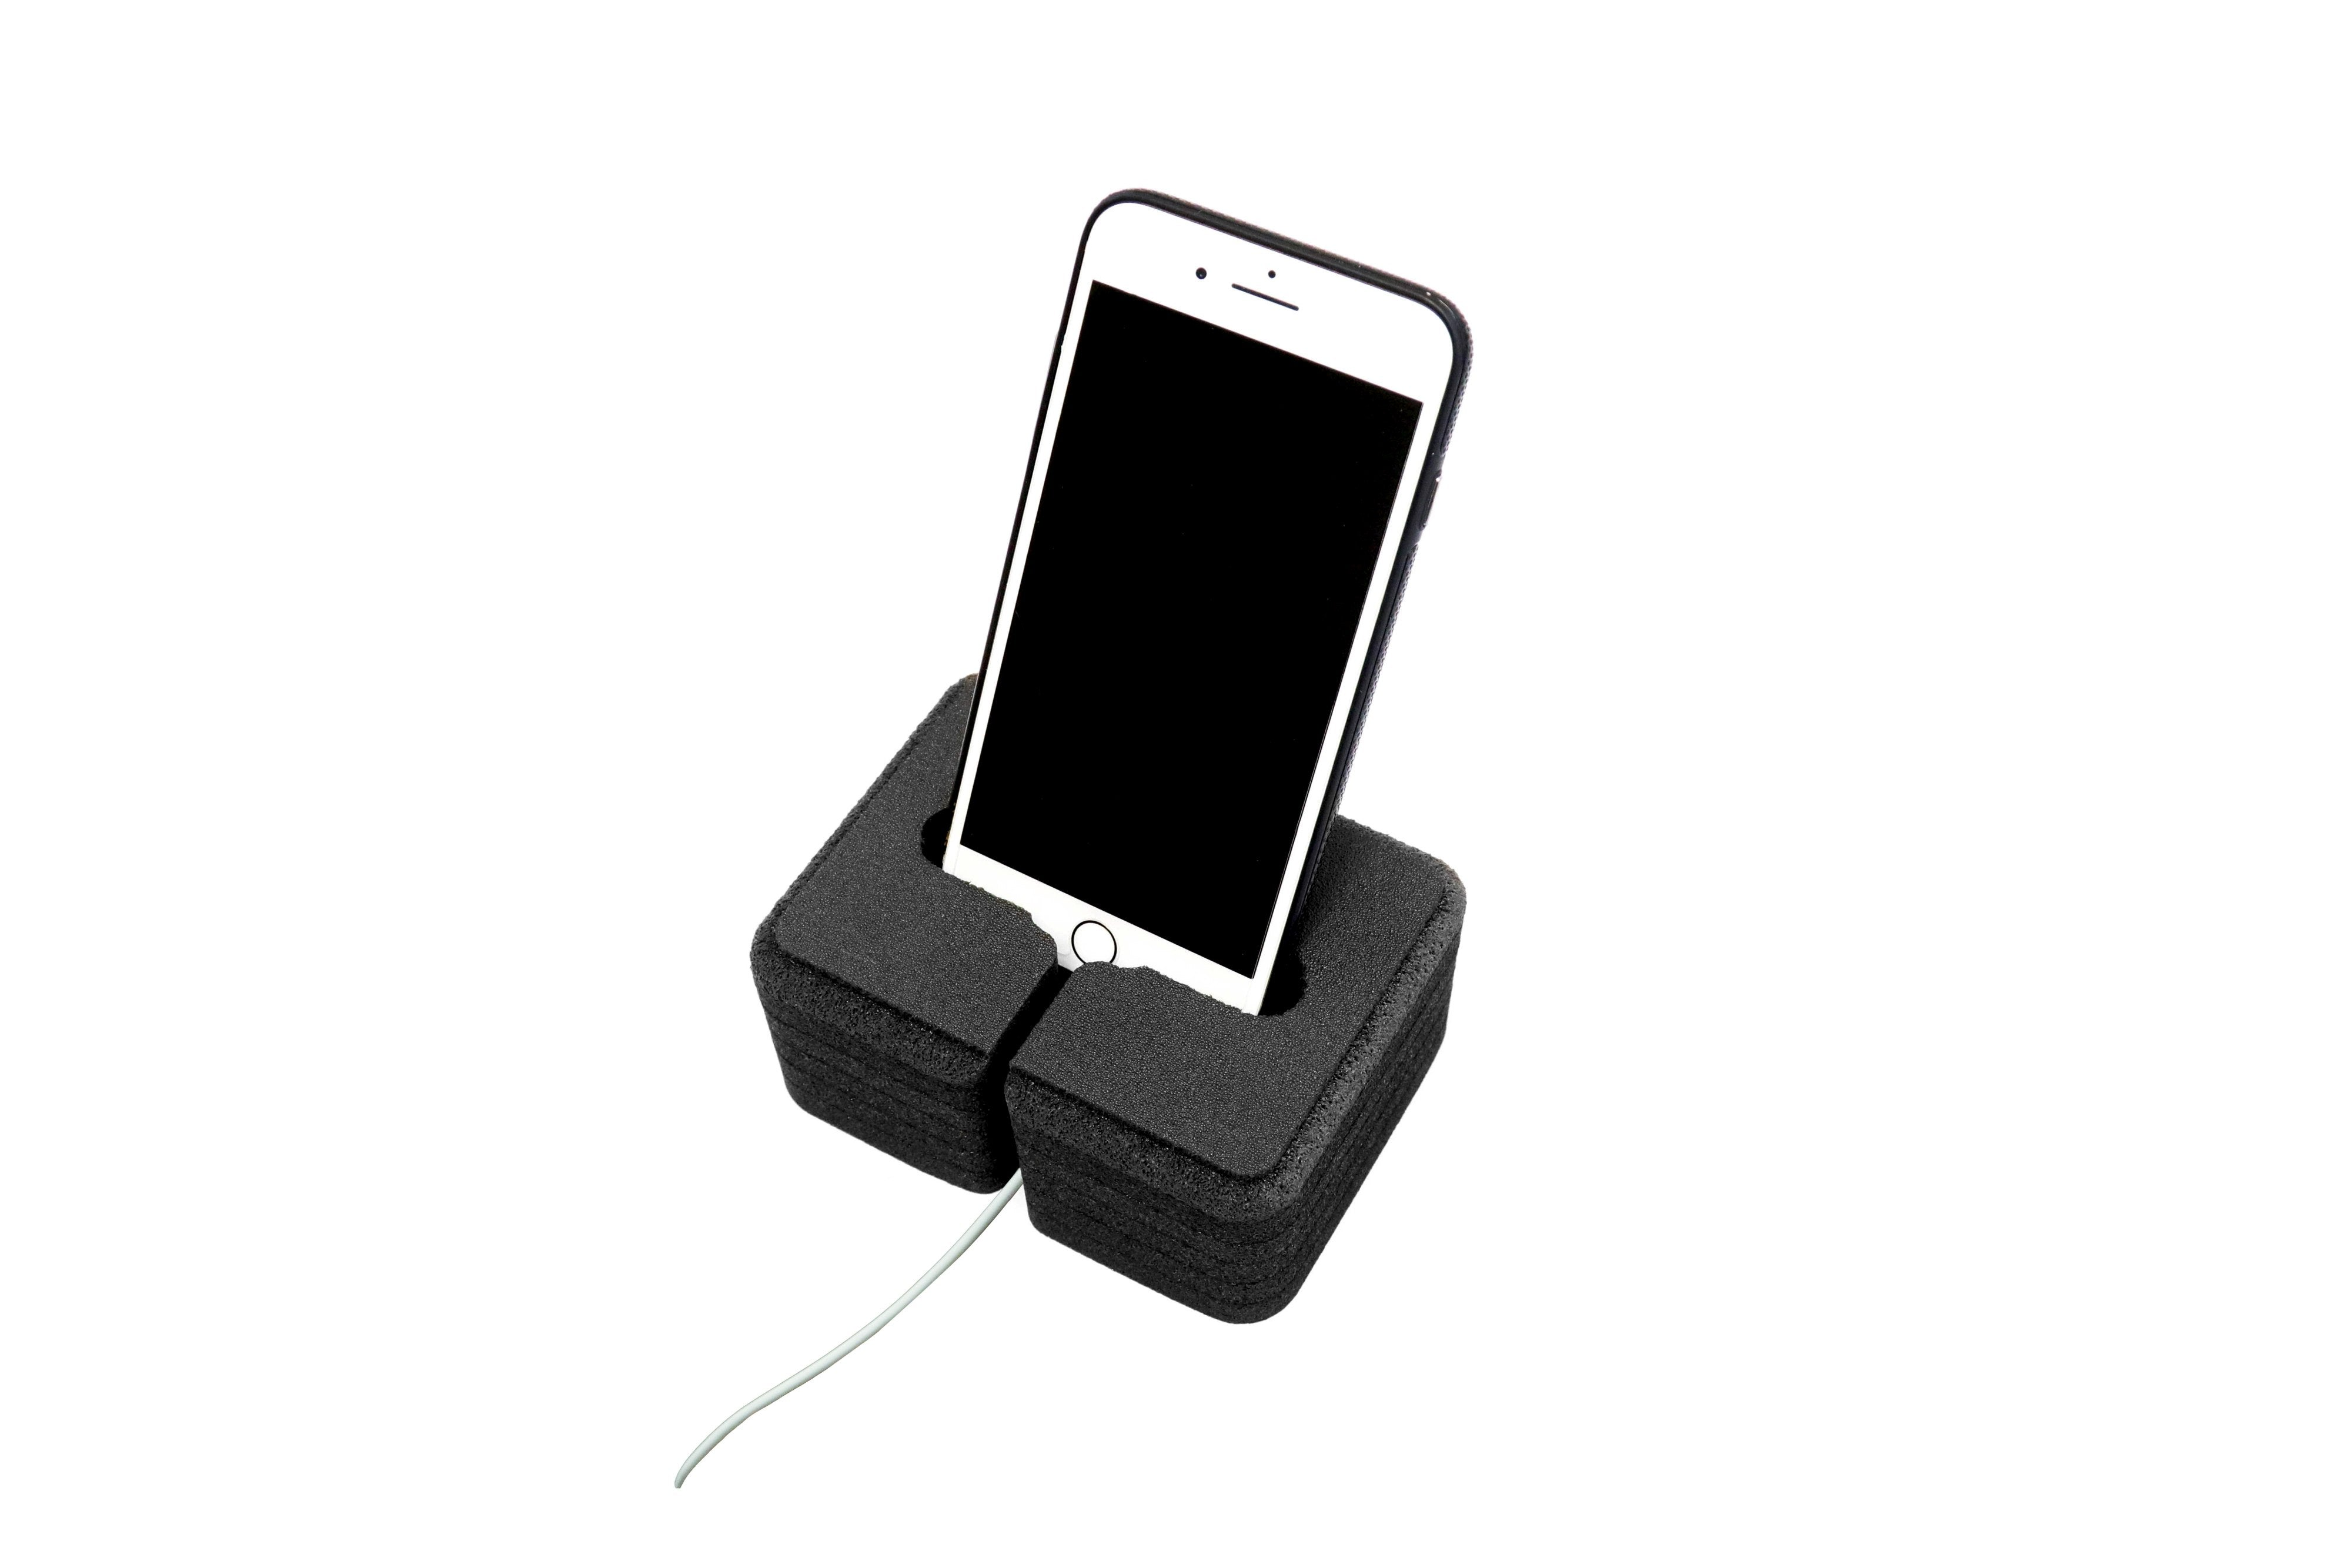 3 Cell Phone Stands Cradle Holder Fits Most Smartphones Compatible with Apple iPhone Samsung Galaxy Google Pixel Motorola LG IOS Android